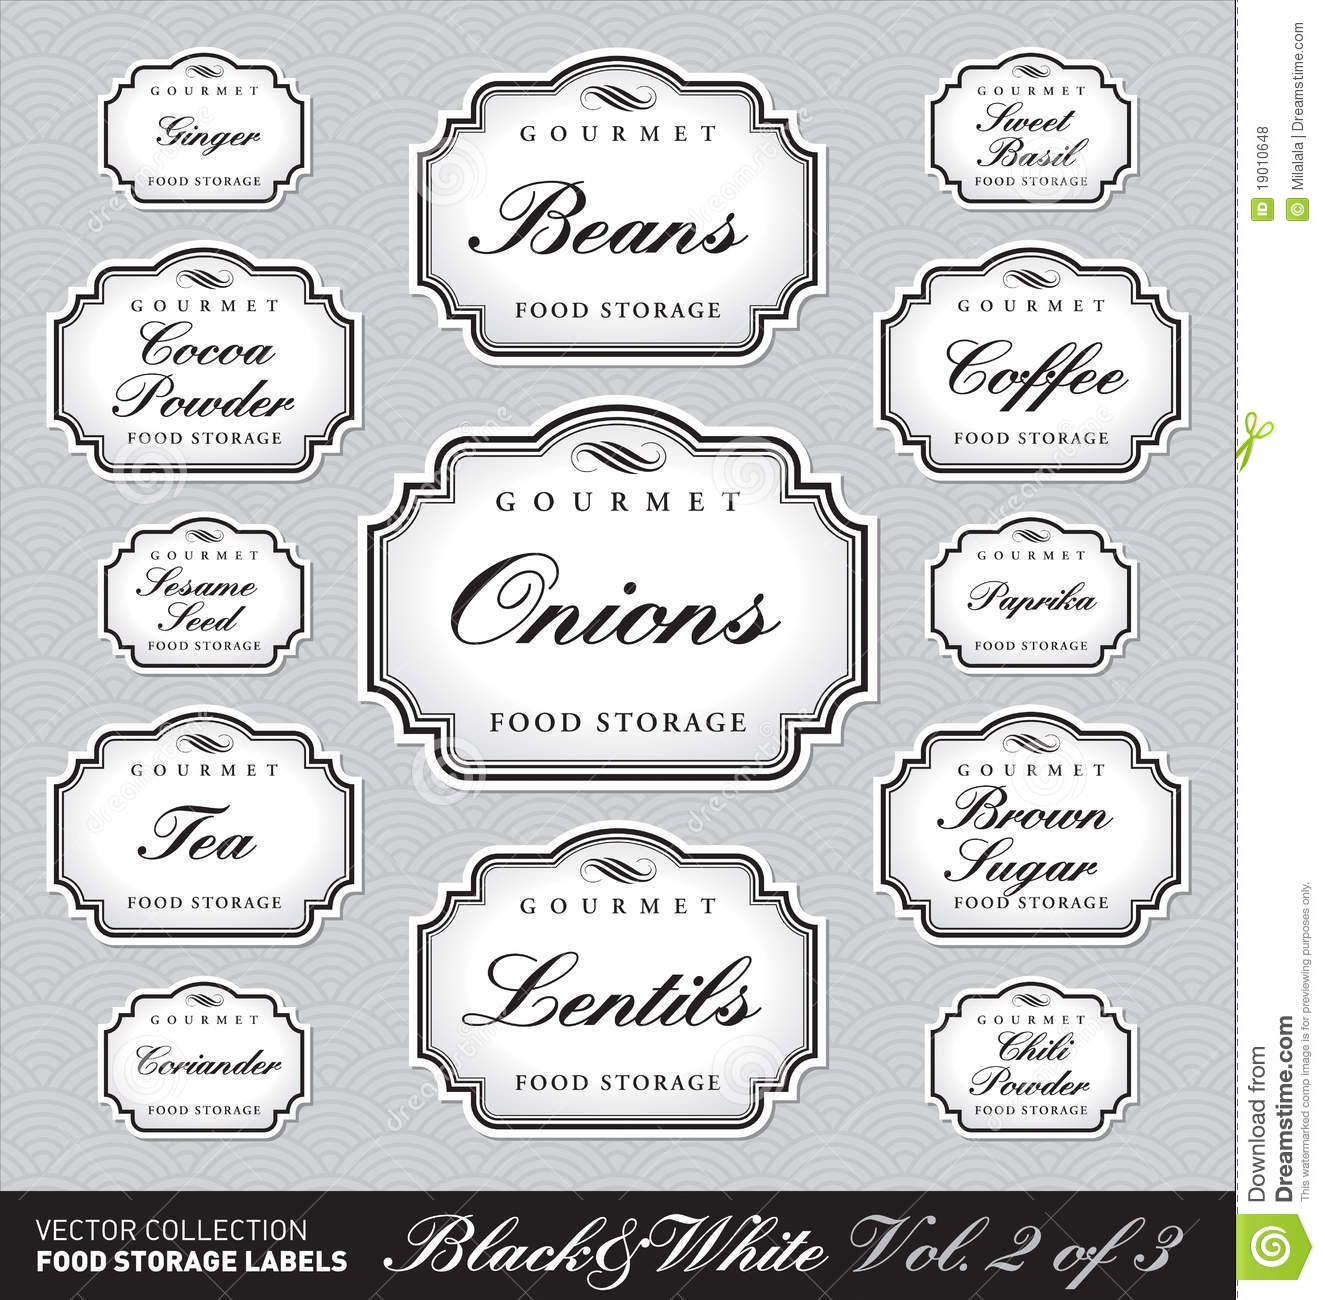 Ornate food storage labels vol2 (vector)